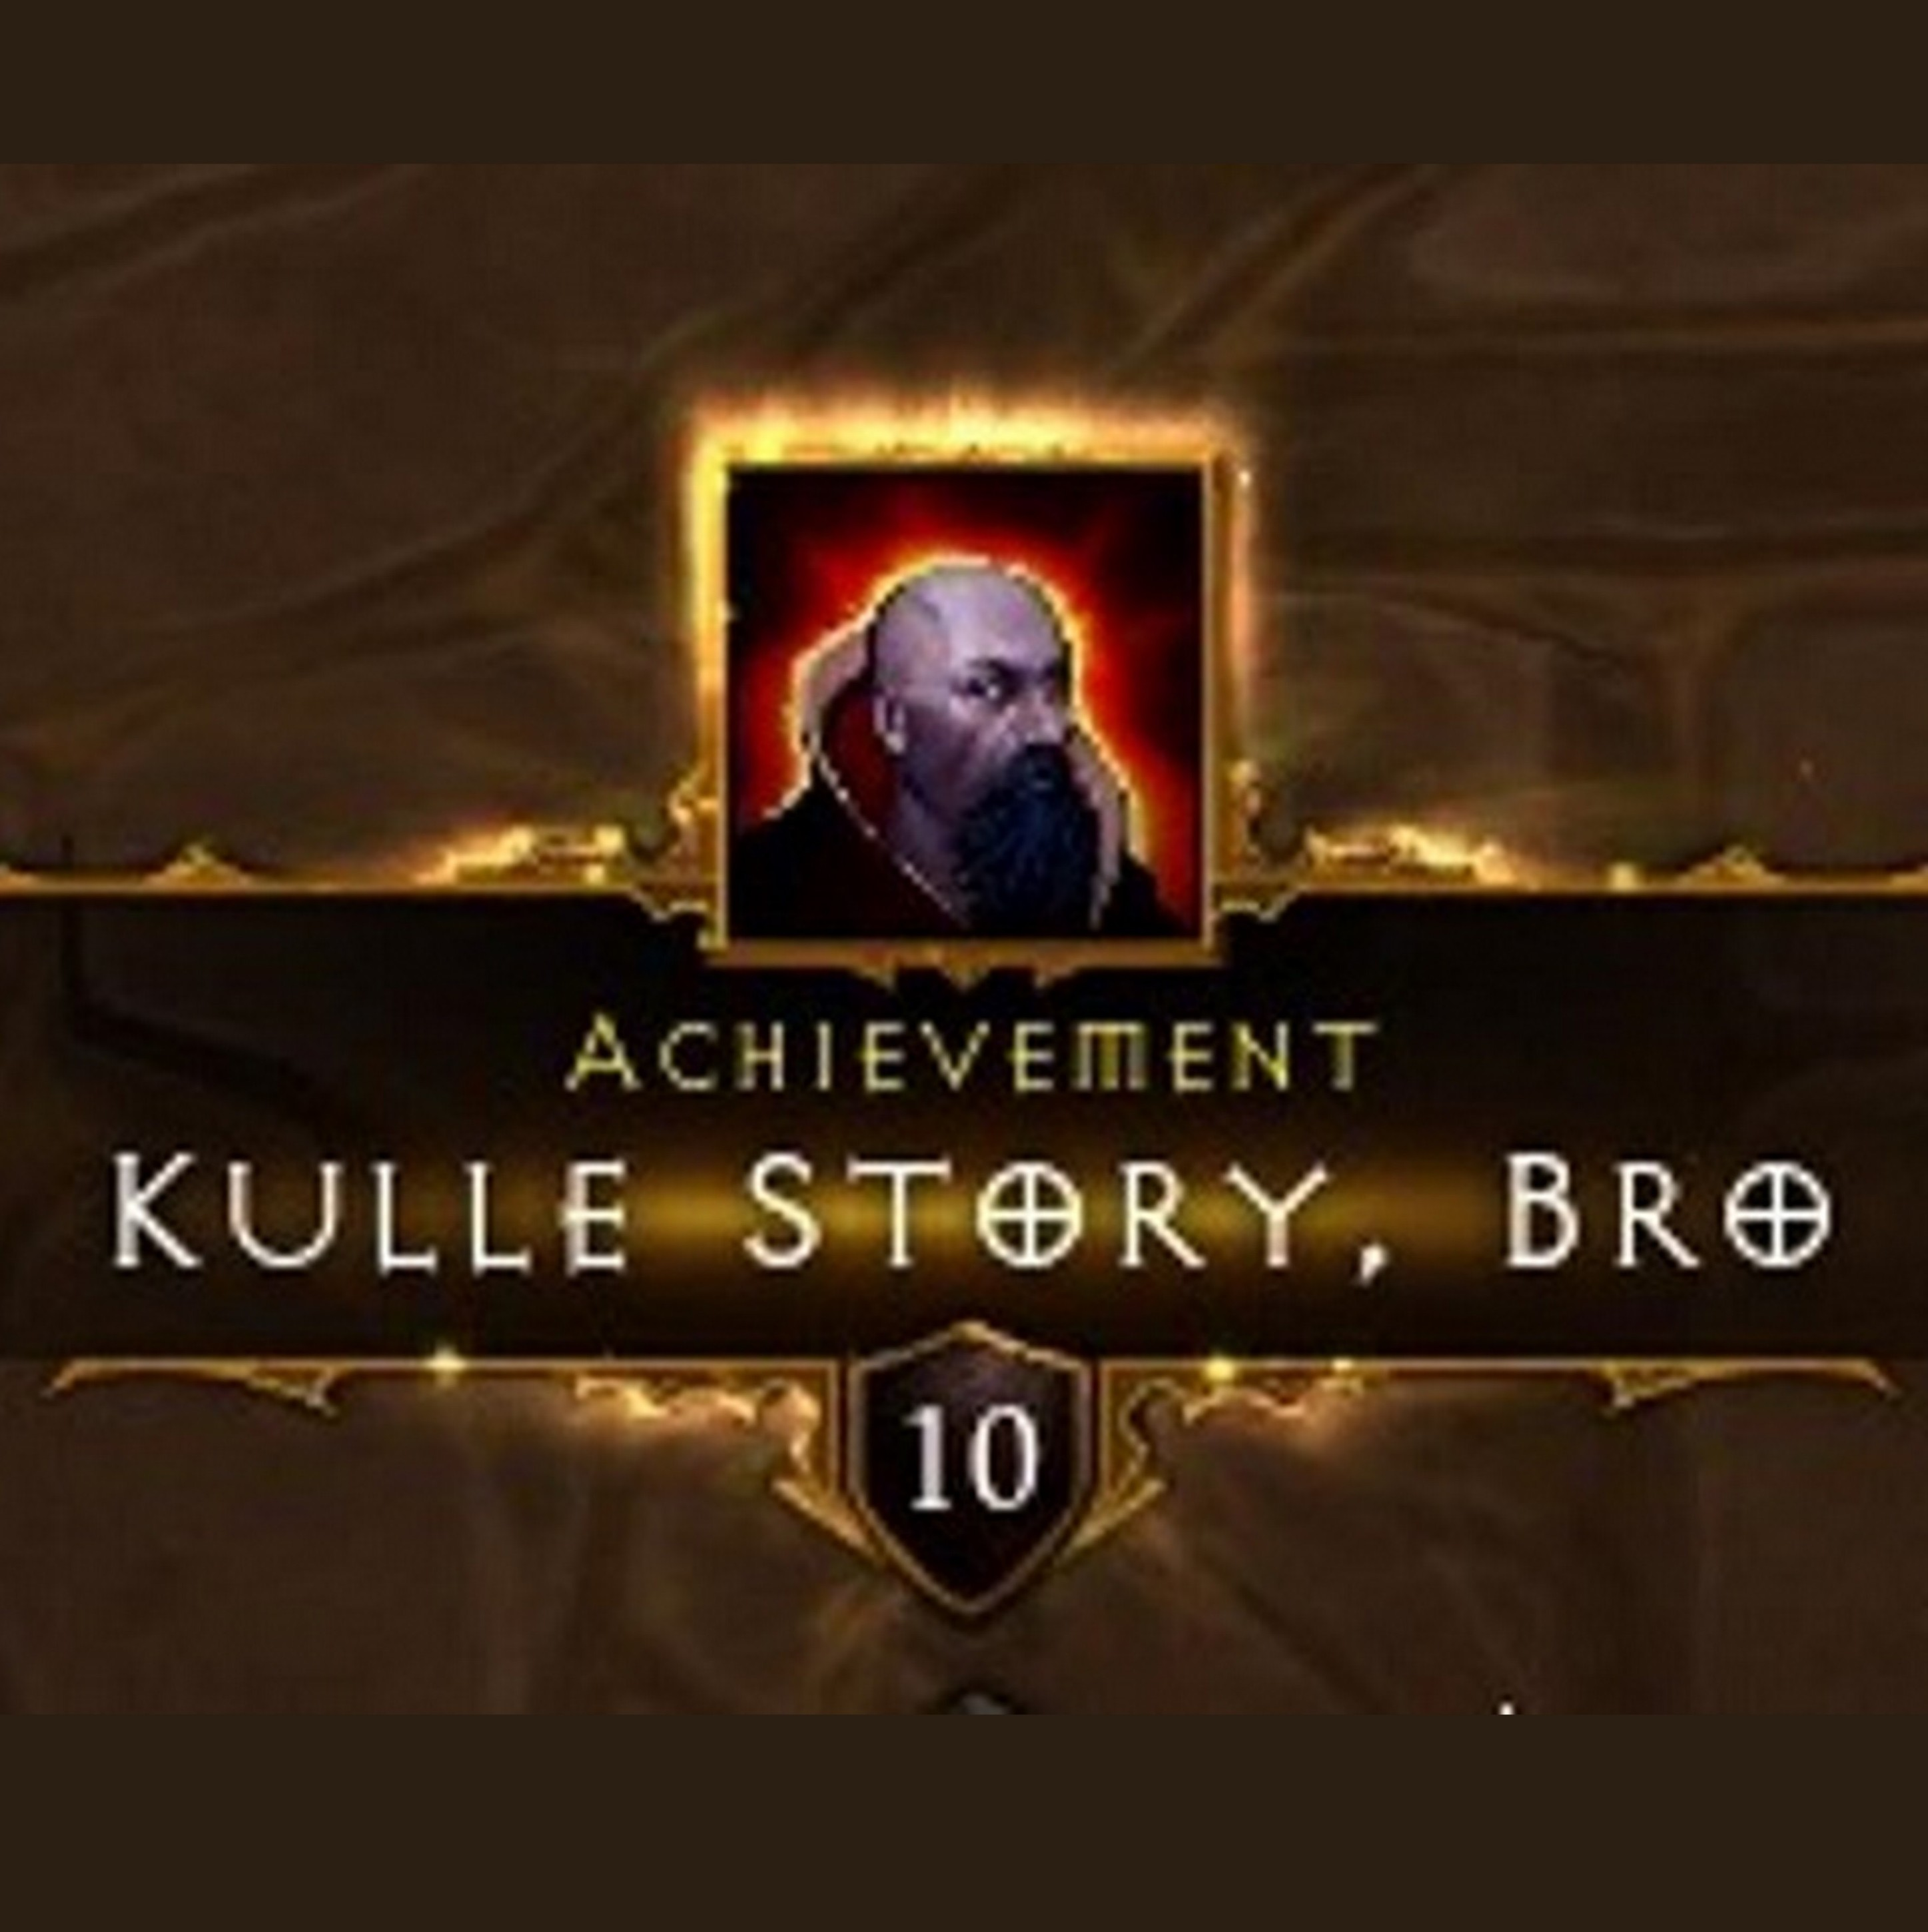 Kulle Story Bro - A Diablo 3 Podcast Episode 27